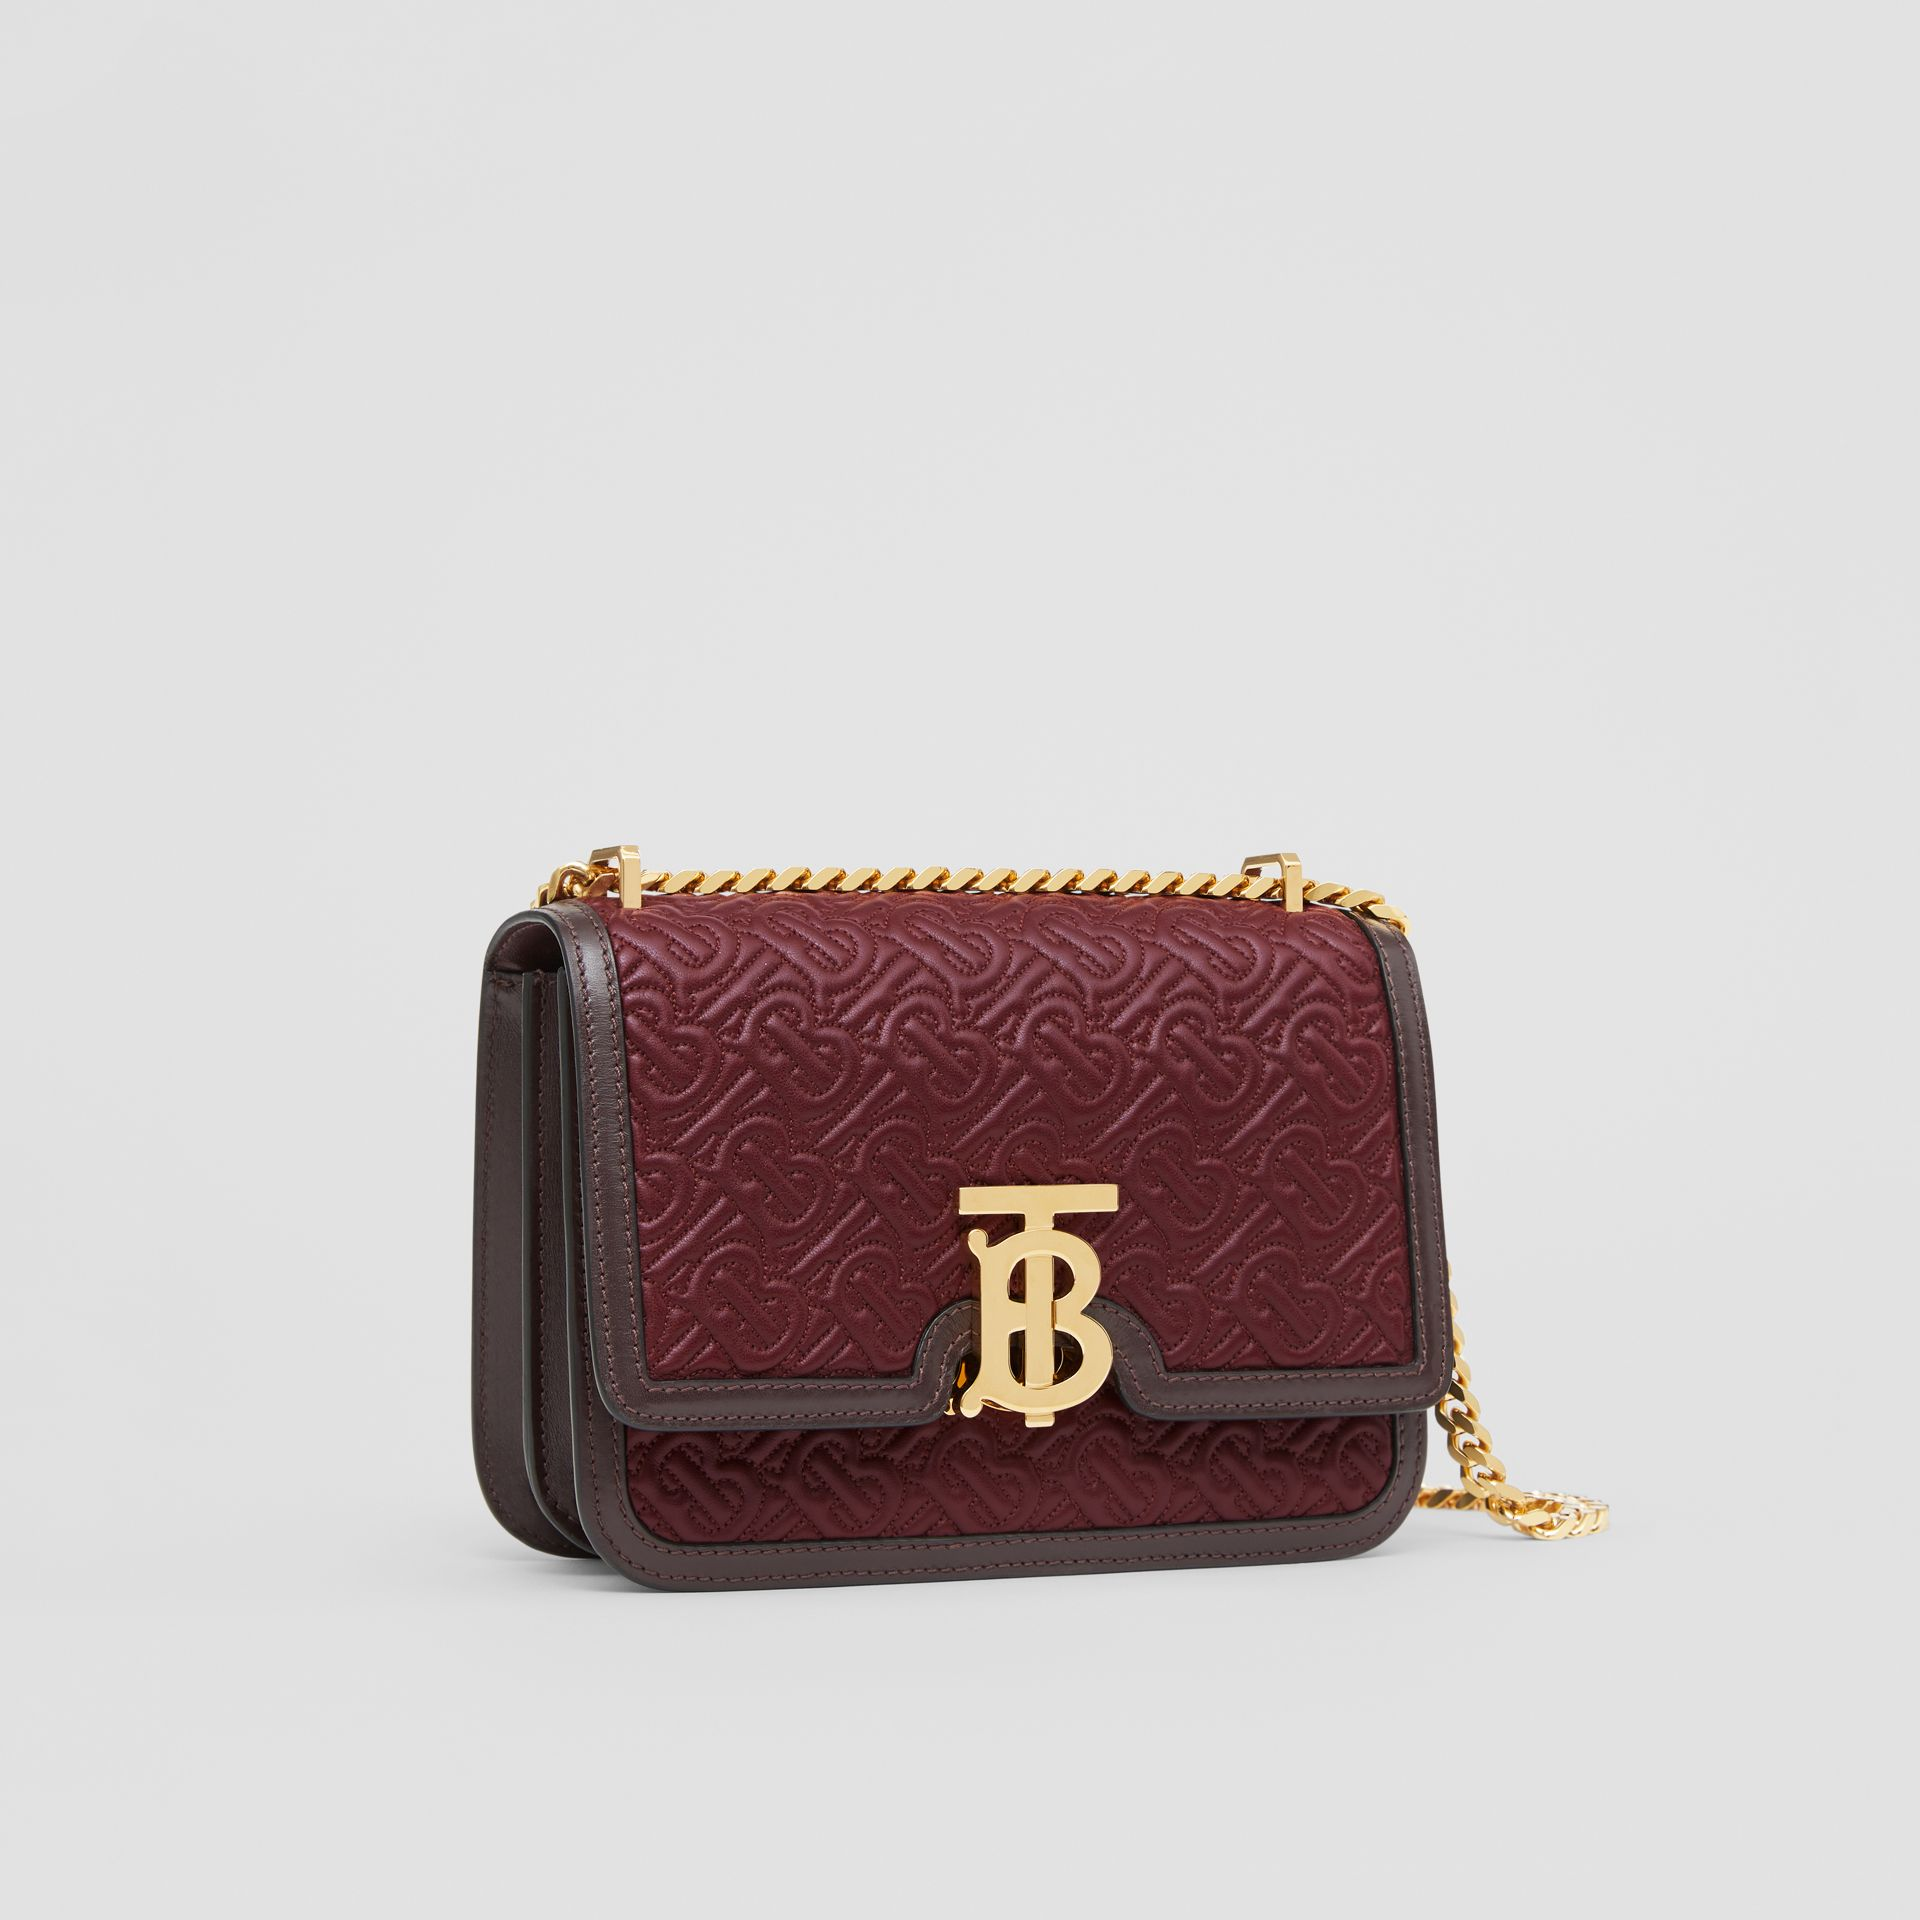 Small Quilted Monogram Lambskin TB Bag in Dark Burgundy - Women | Burberry - gallery image 6